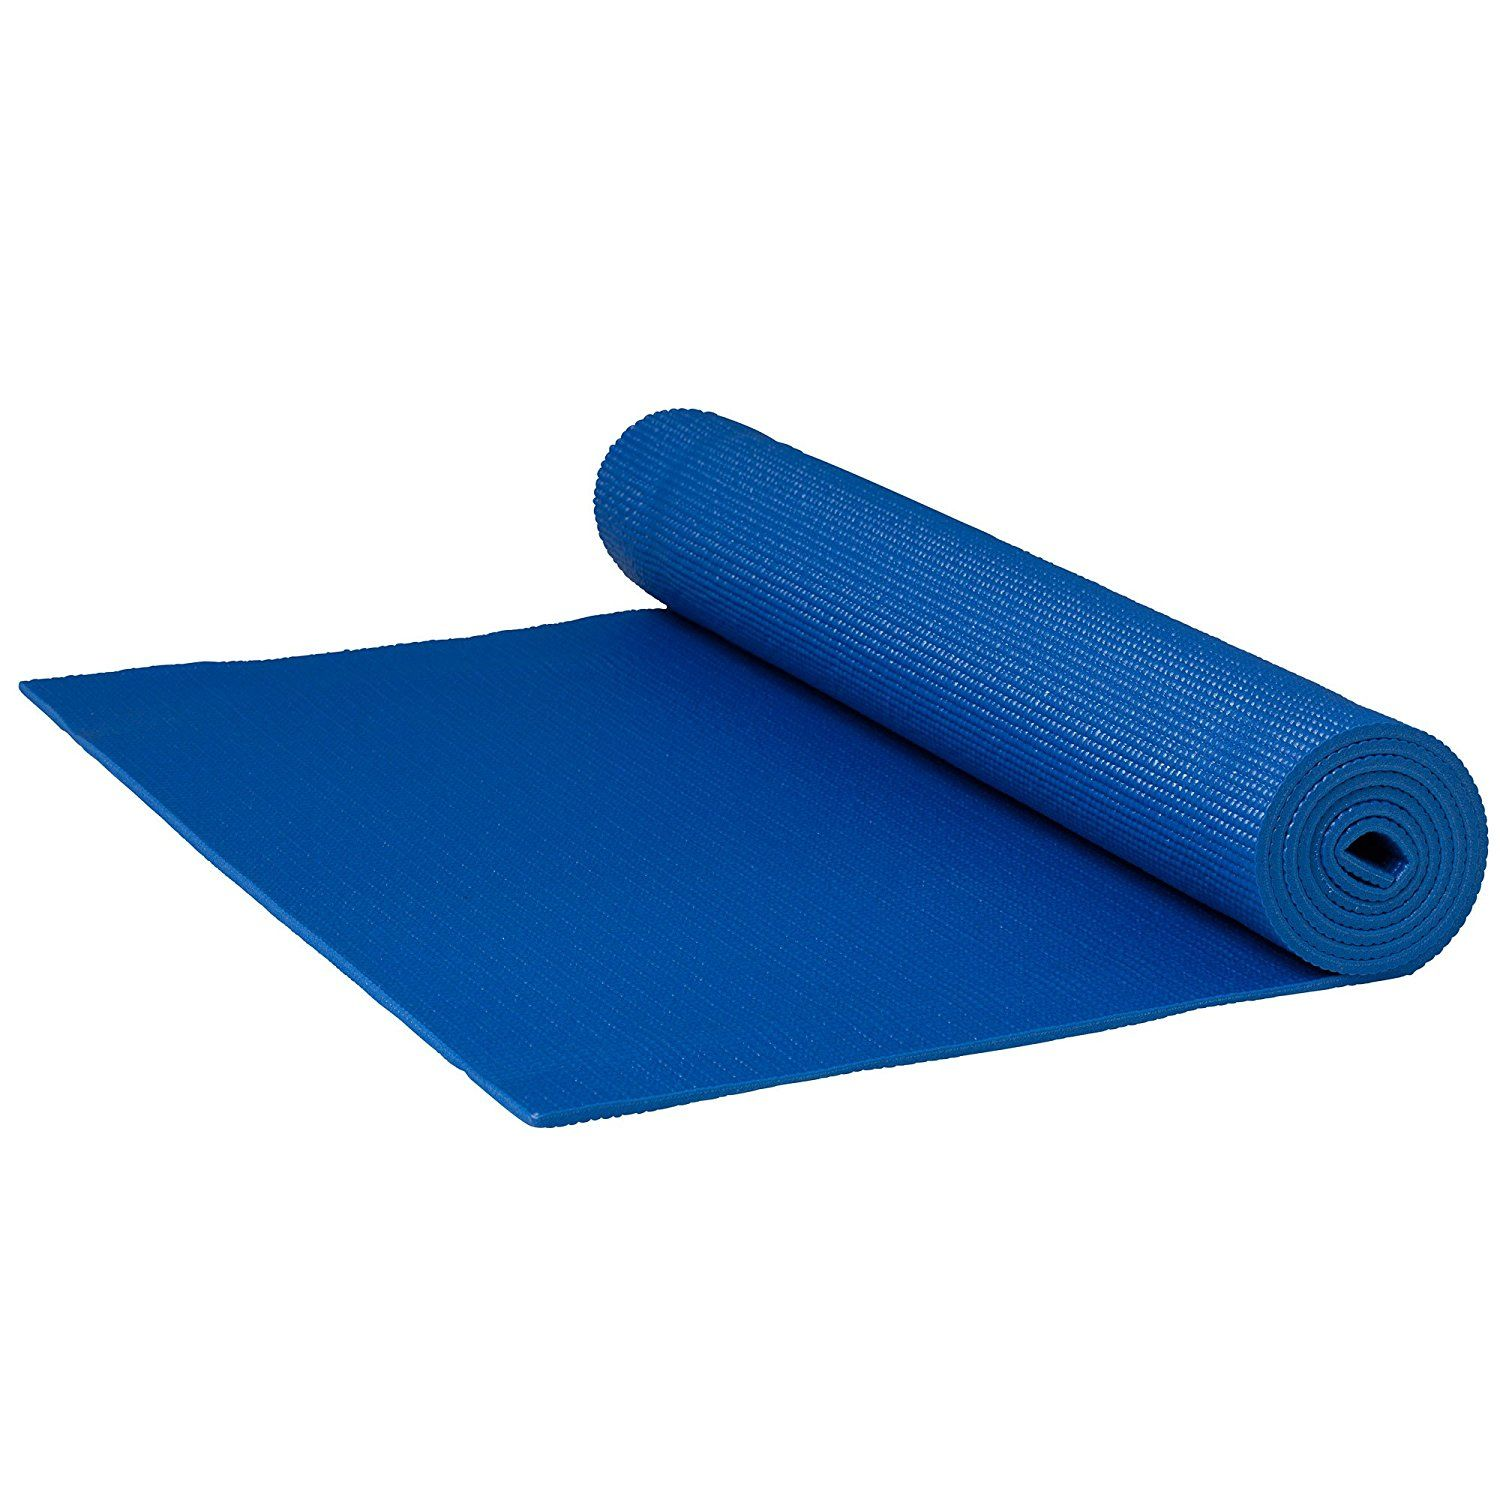 Yoga Mats Extra Thick 1 4 Inch Extra Long 72 Inches Non Toxic Sgs Certified Comes With A Carrying Strap Price 11 99